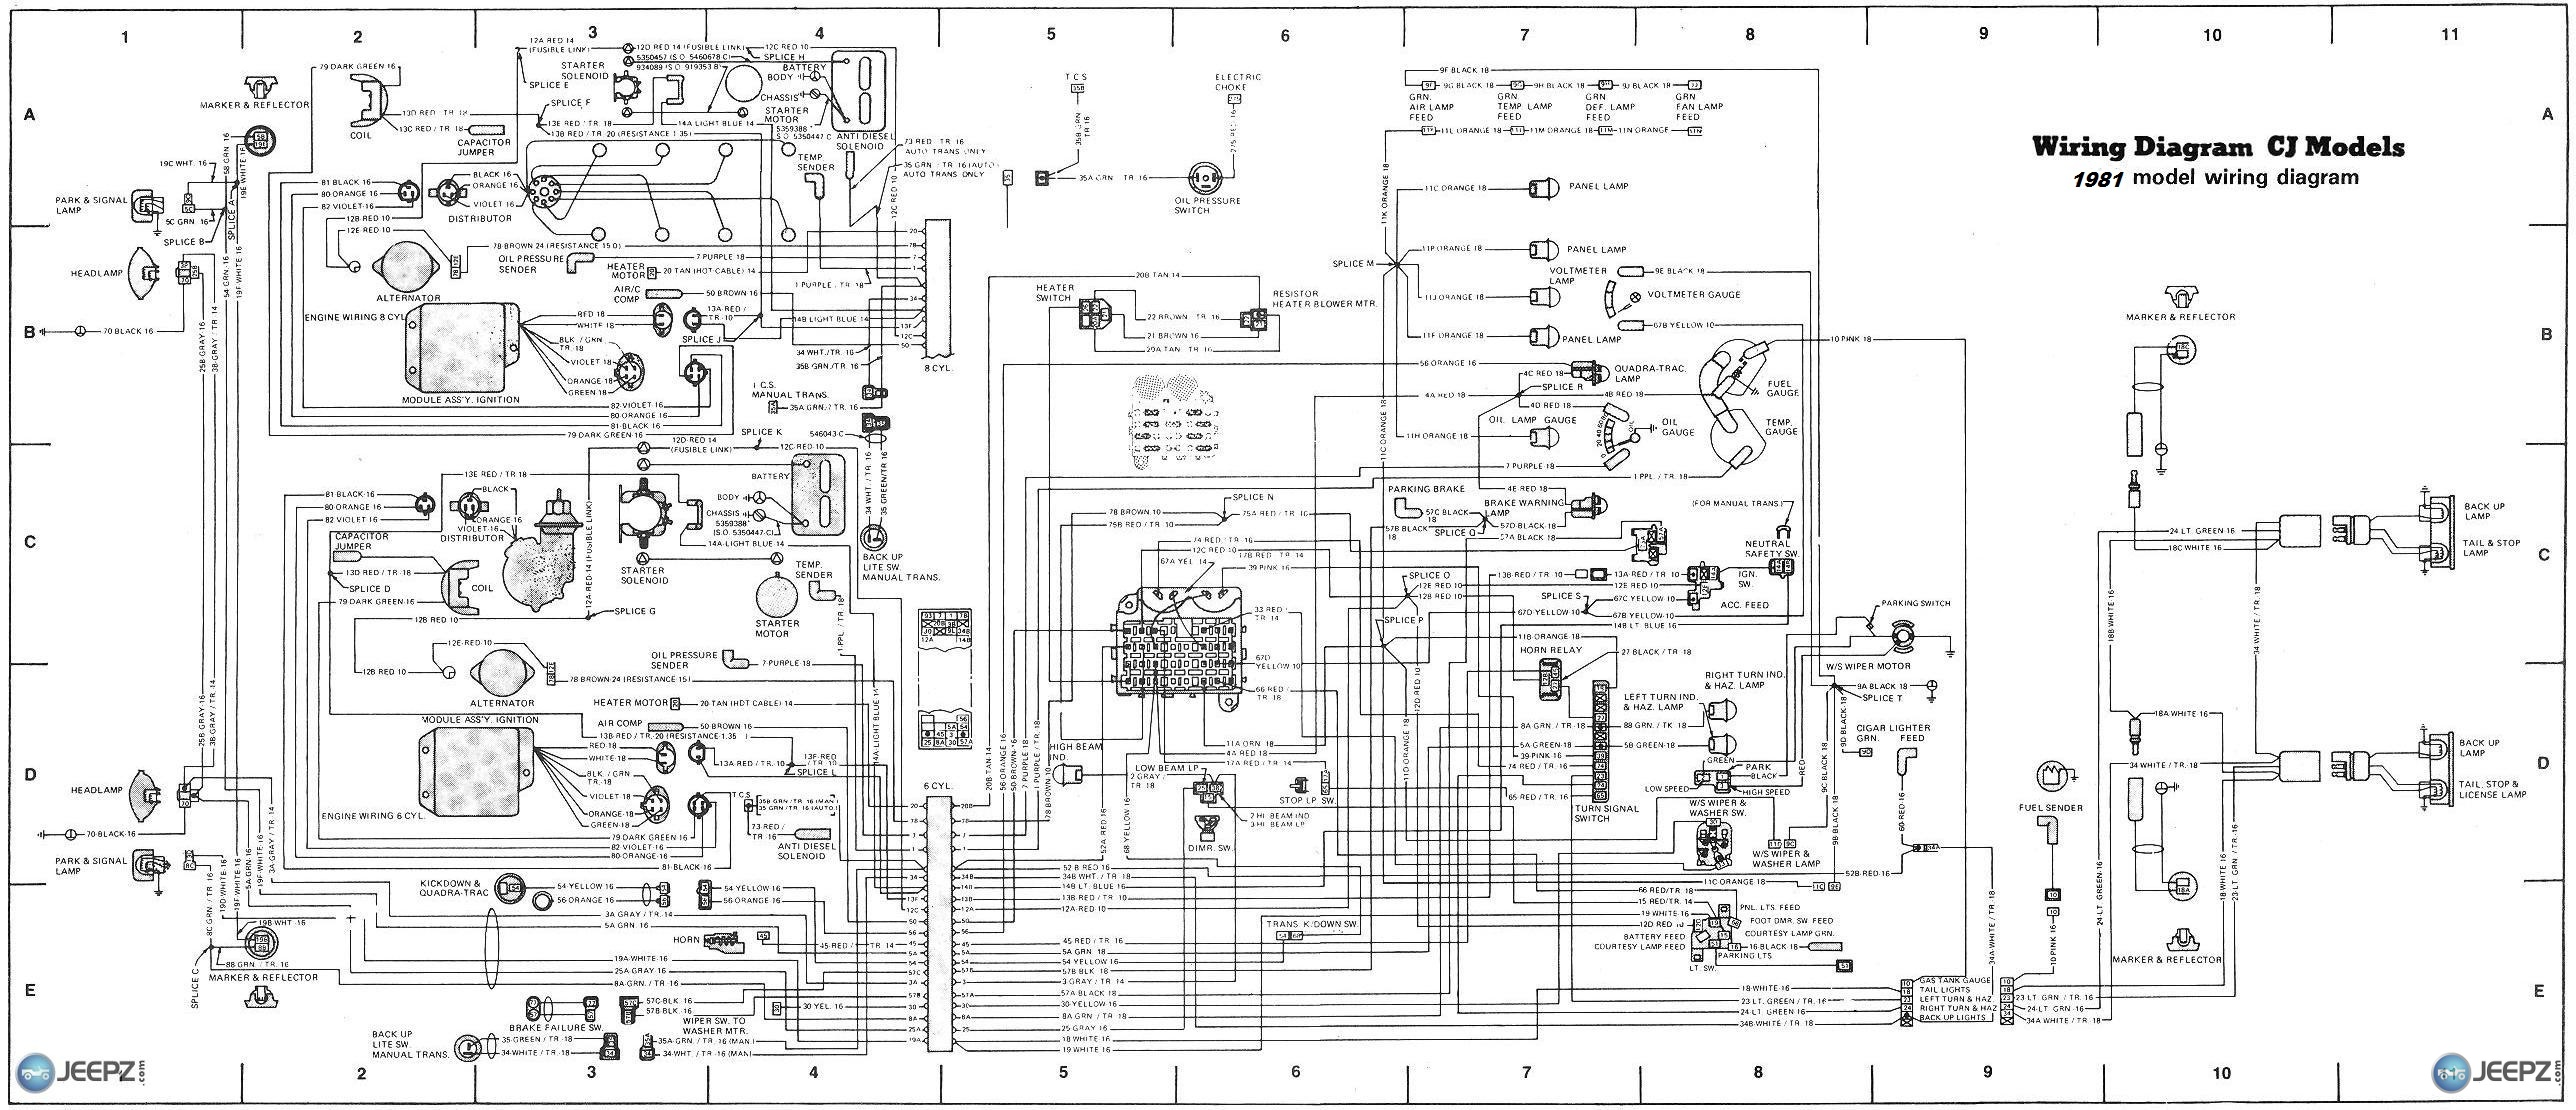 7993d1301845049 cj 7 wire diagram cj wiring diagram 1981 wiring diagrams \u2022 j squared co sc18g wiring diagram at couponss.co